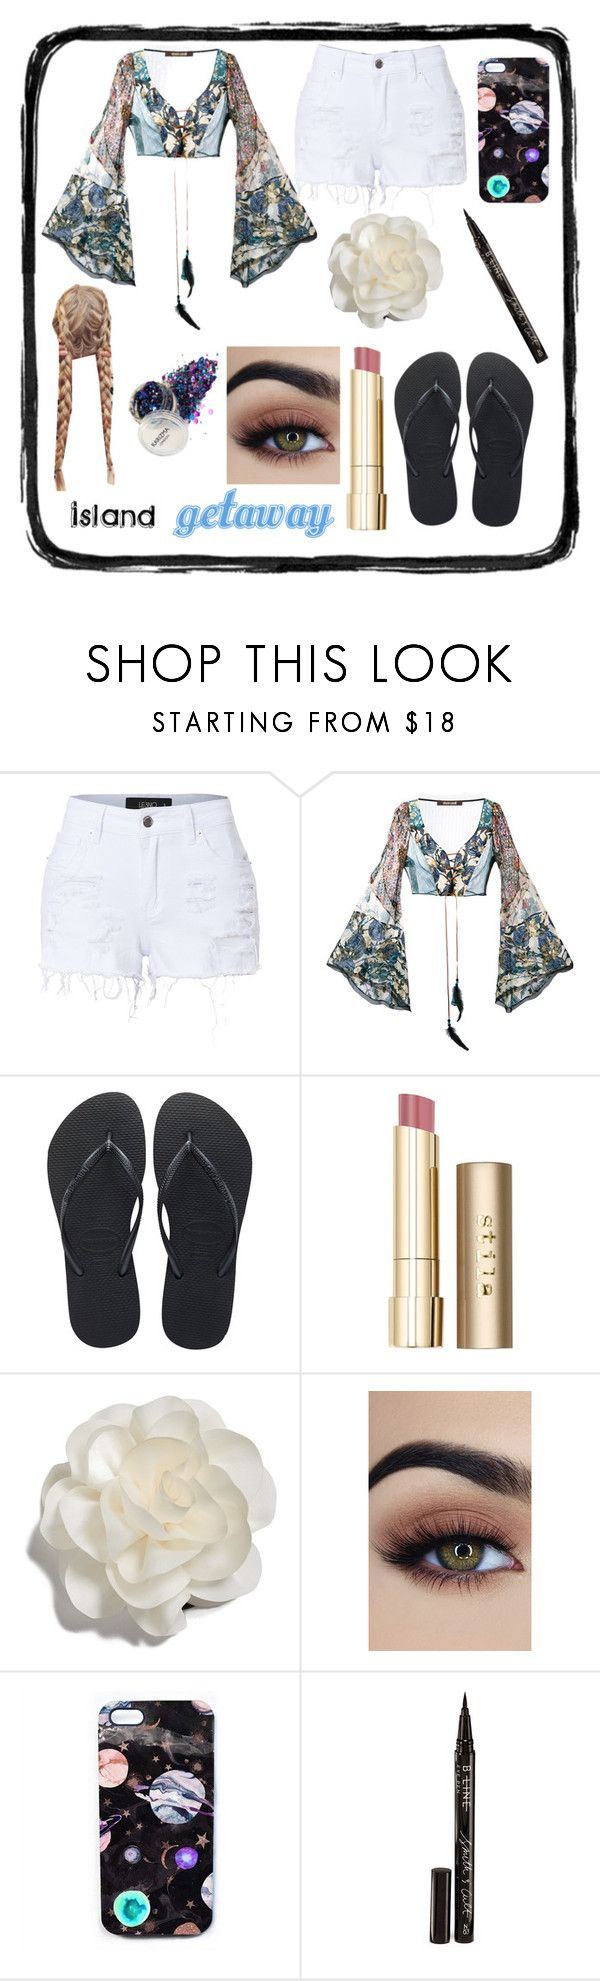 """""""Island getaway"""" by piixelated ❤ liked on Polyvore featuring LE3NO, Roberto Cavalli, Havaianas, Stila, Cara, Nikki Strange and Smith & Cult"""